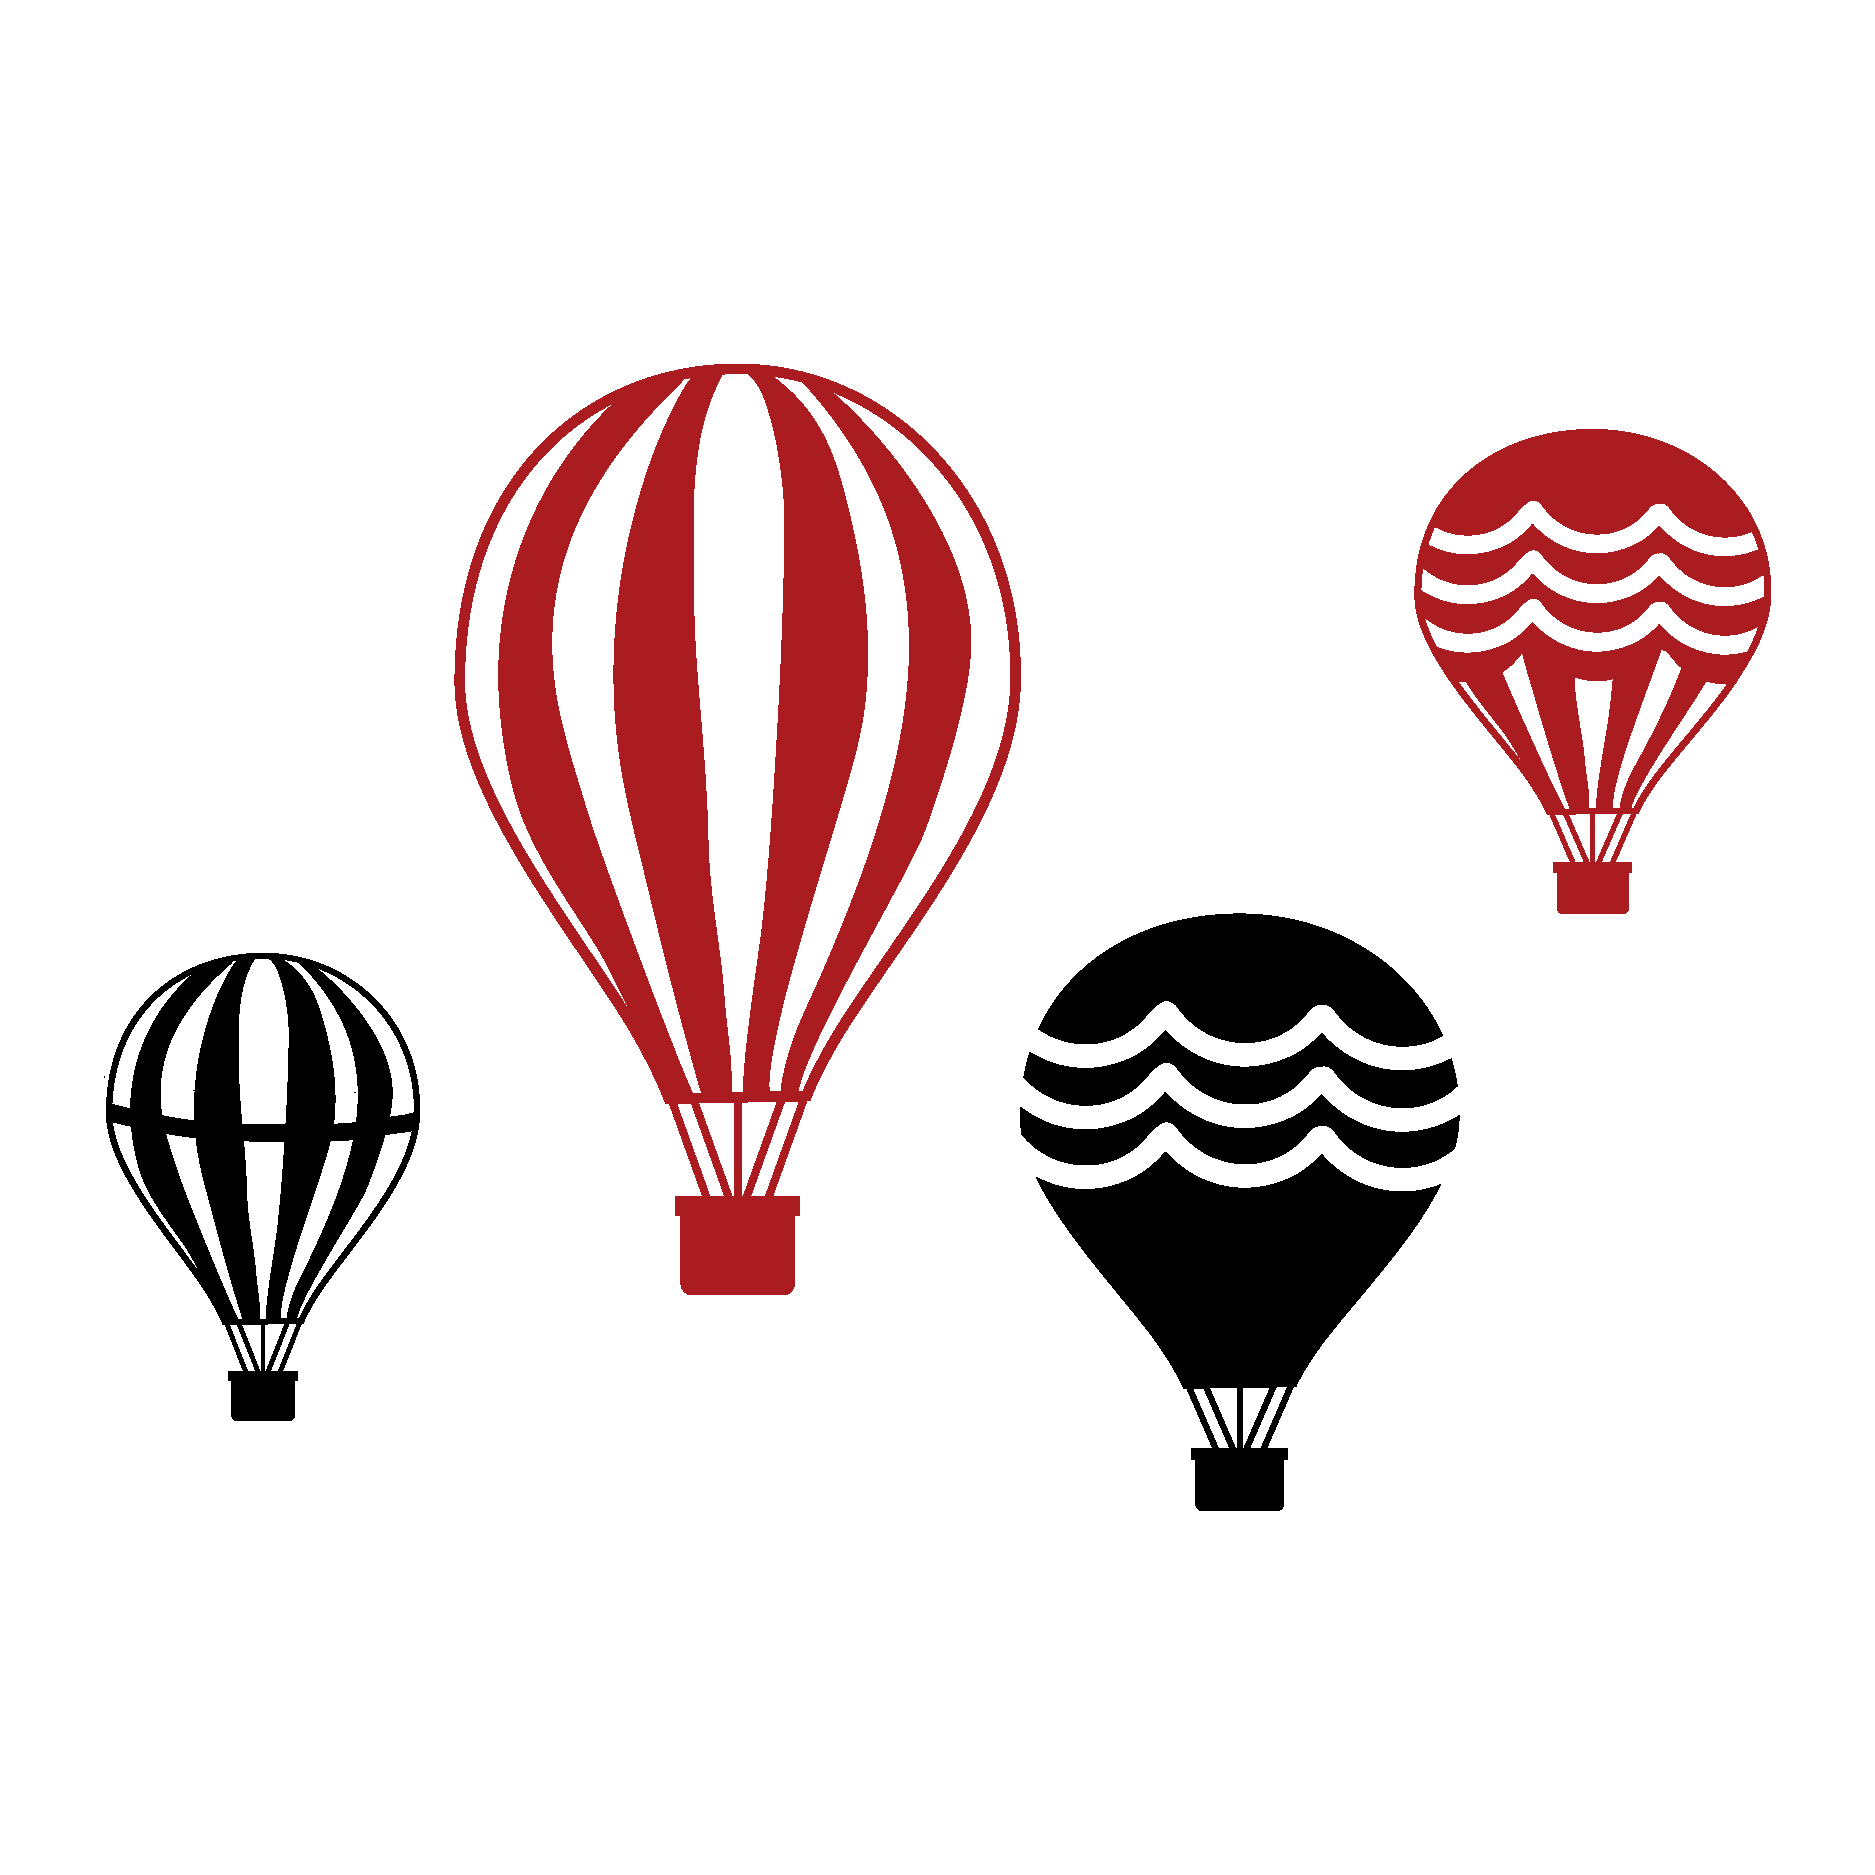 Parachute clipart air ballon. Vintage hot balloon collection